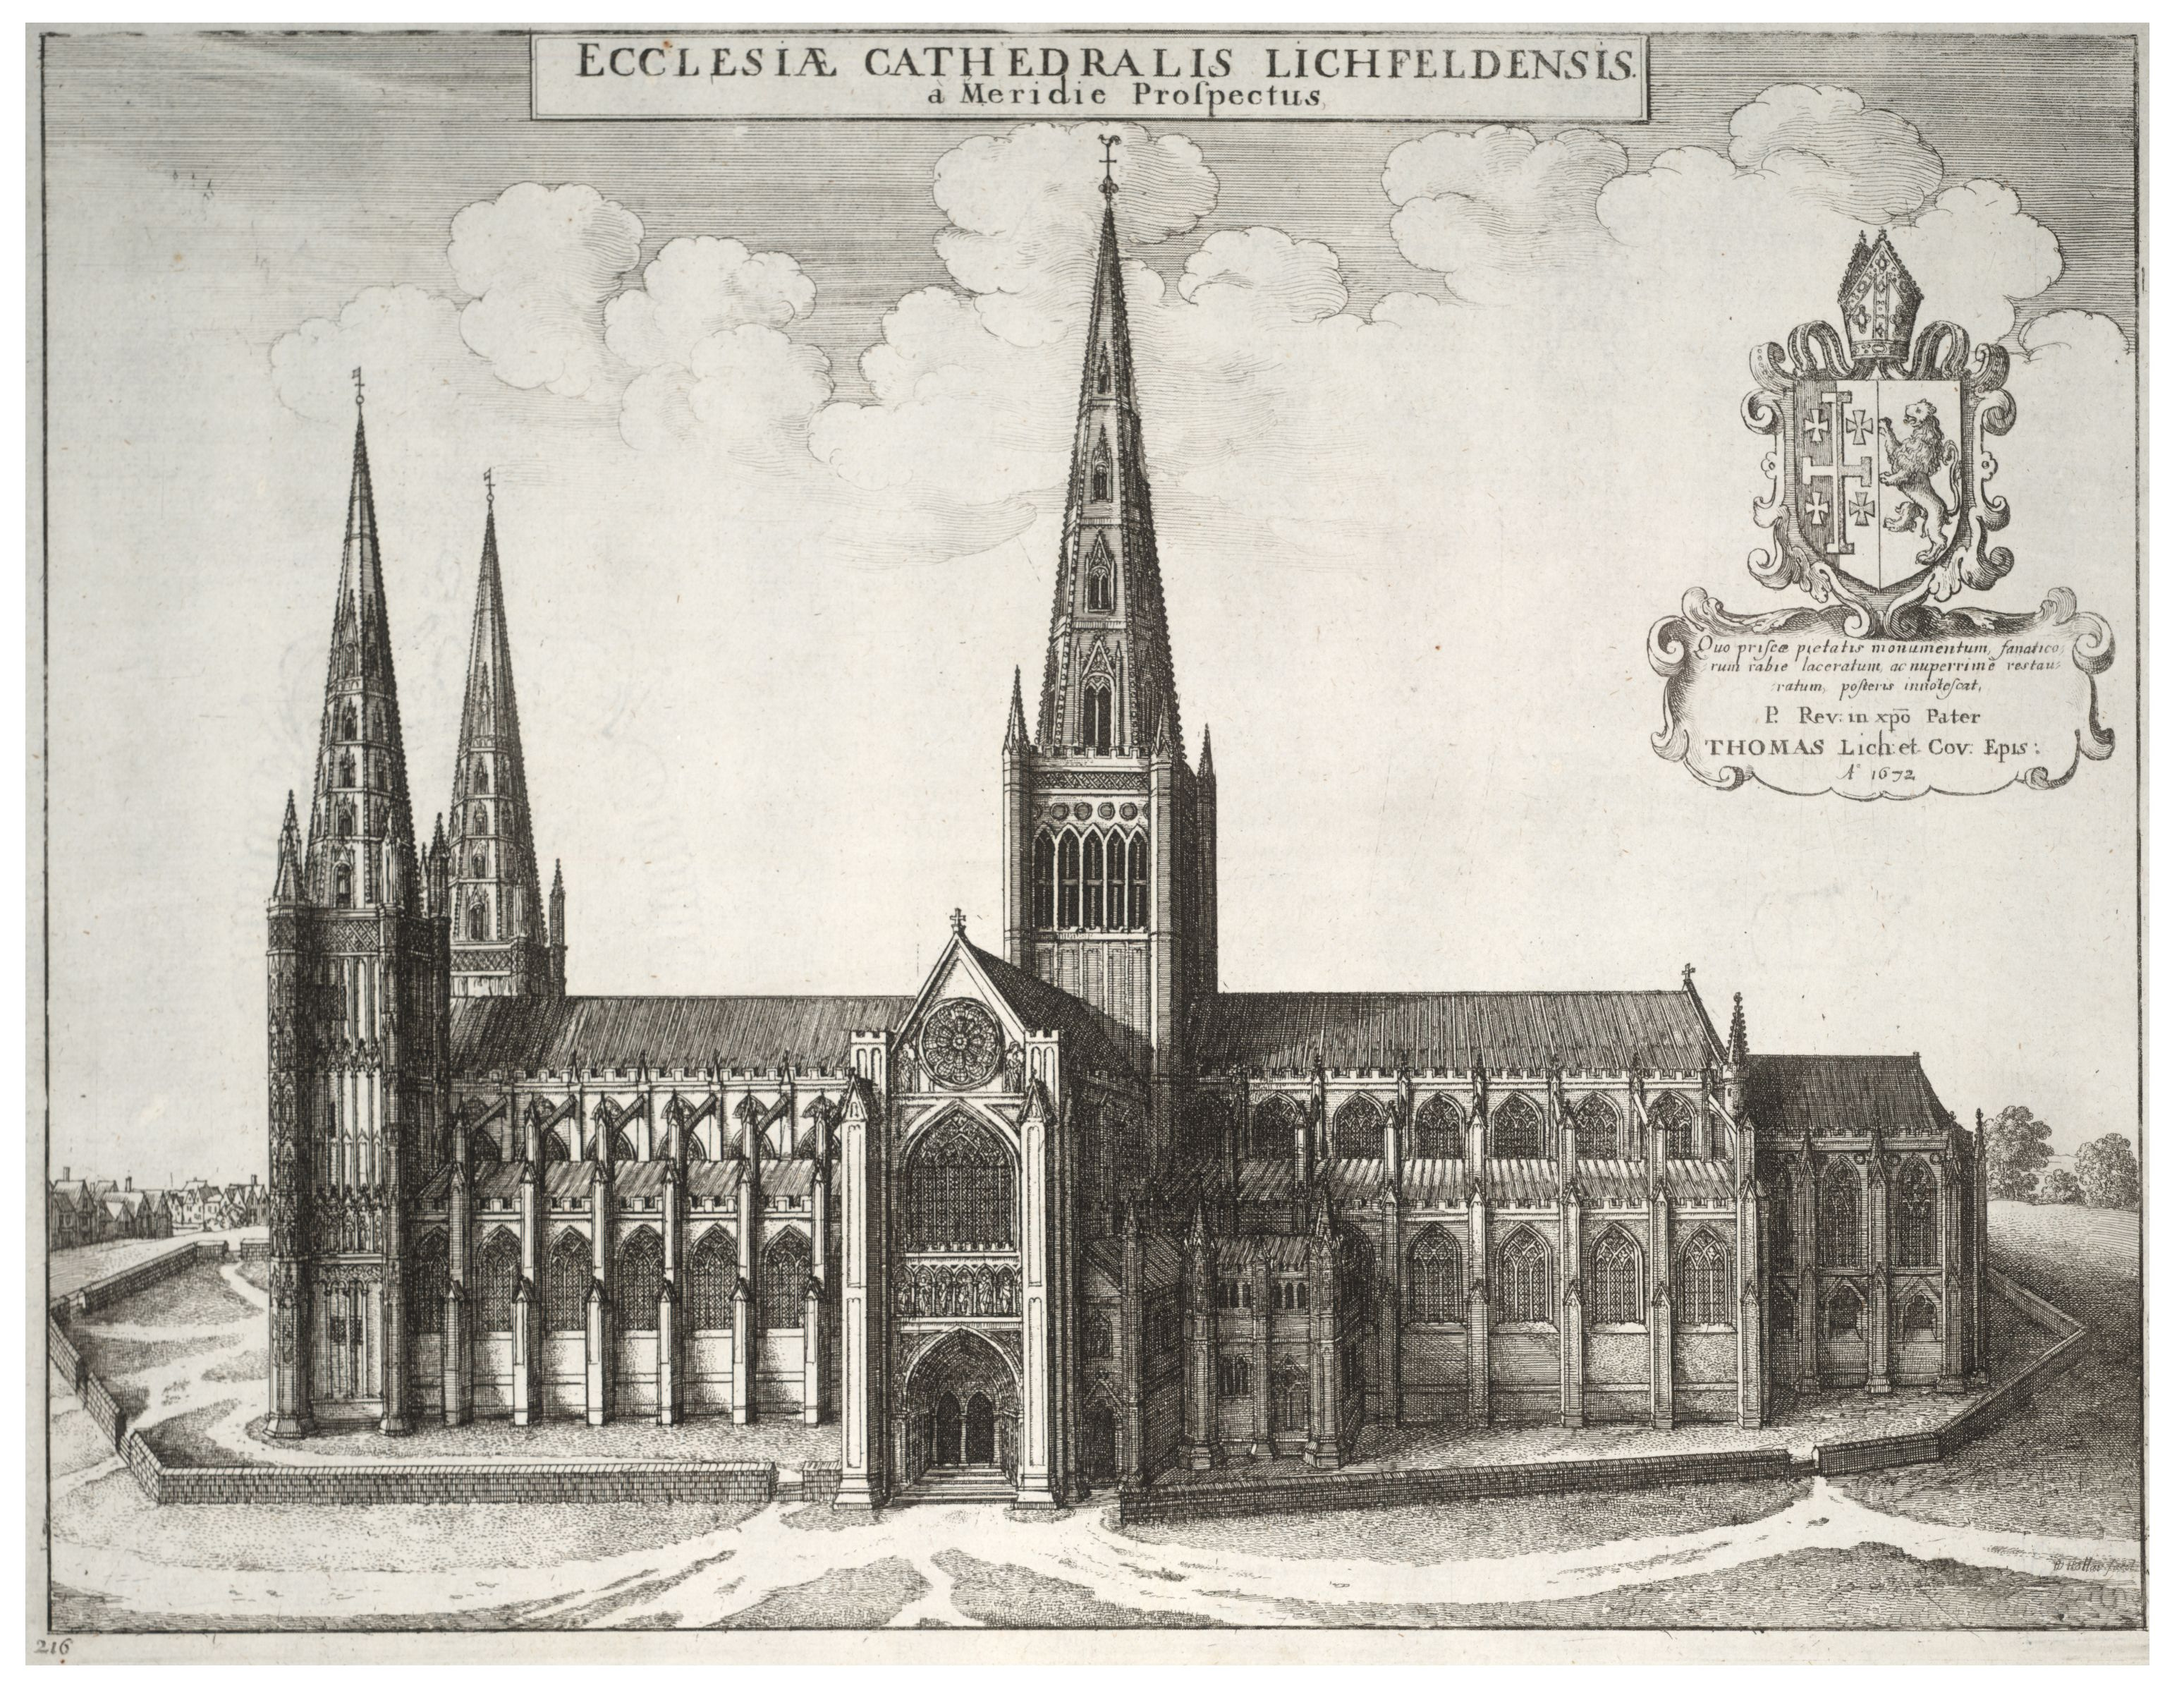 Lichfield Cathedral by Wenceslaus Hollar.